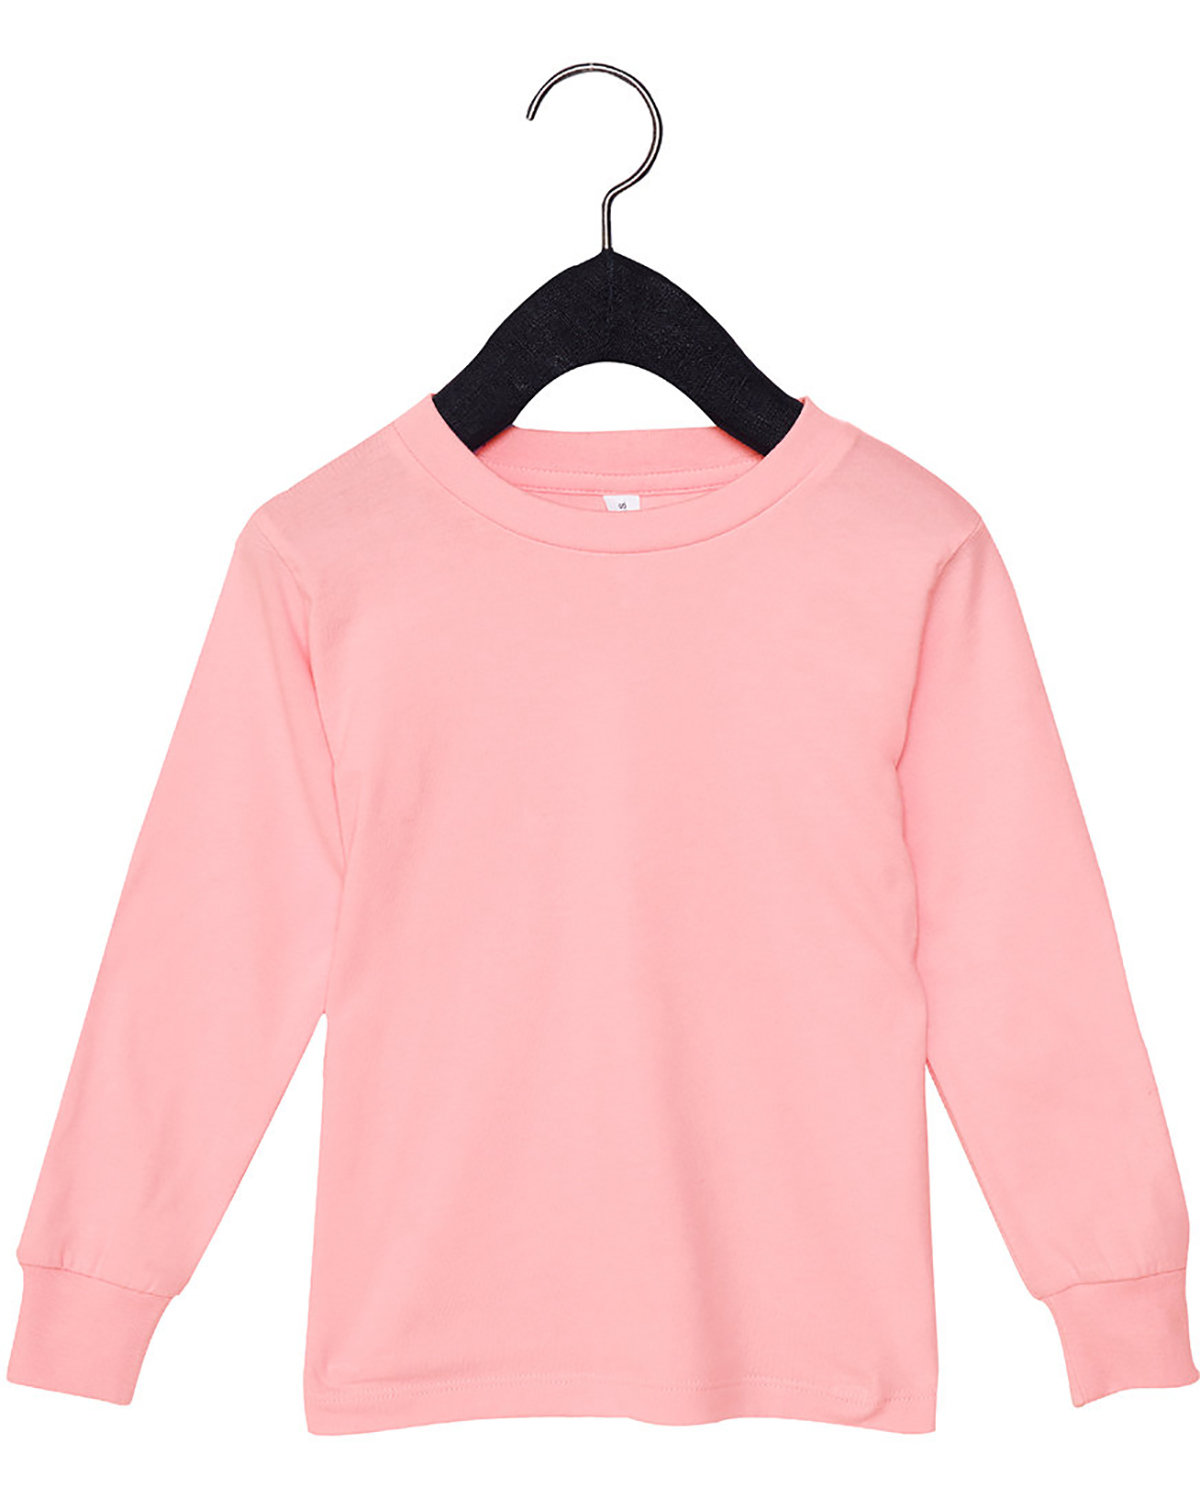 Bella + Canvas Youth Toddler Jersey Long Sleeve T-Shirt PINK